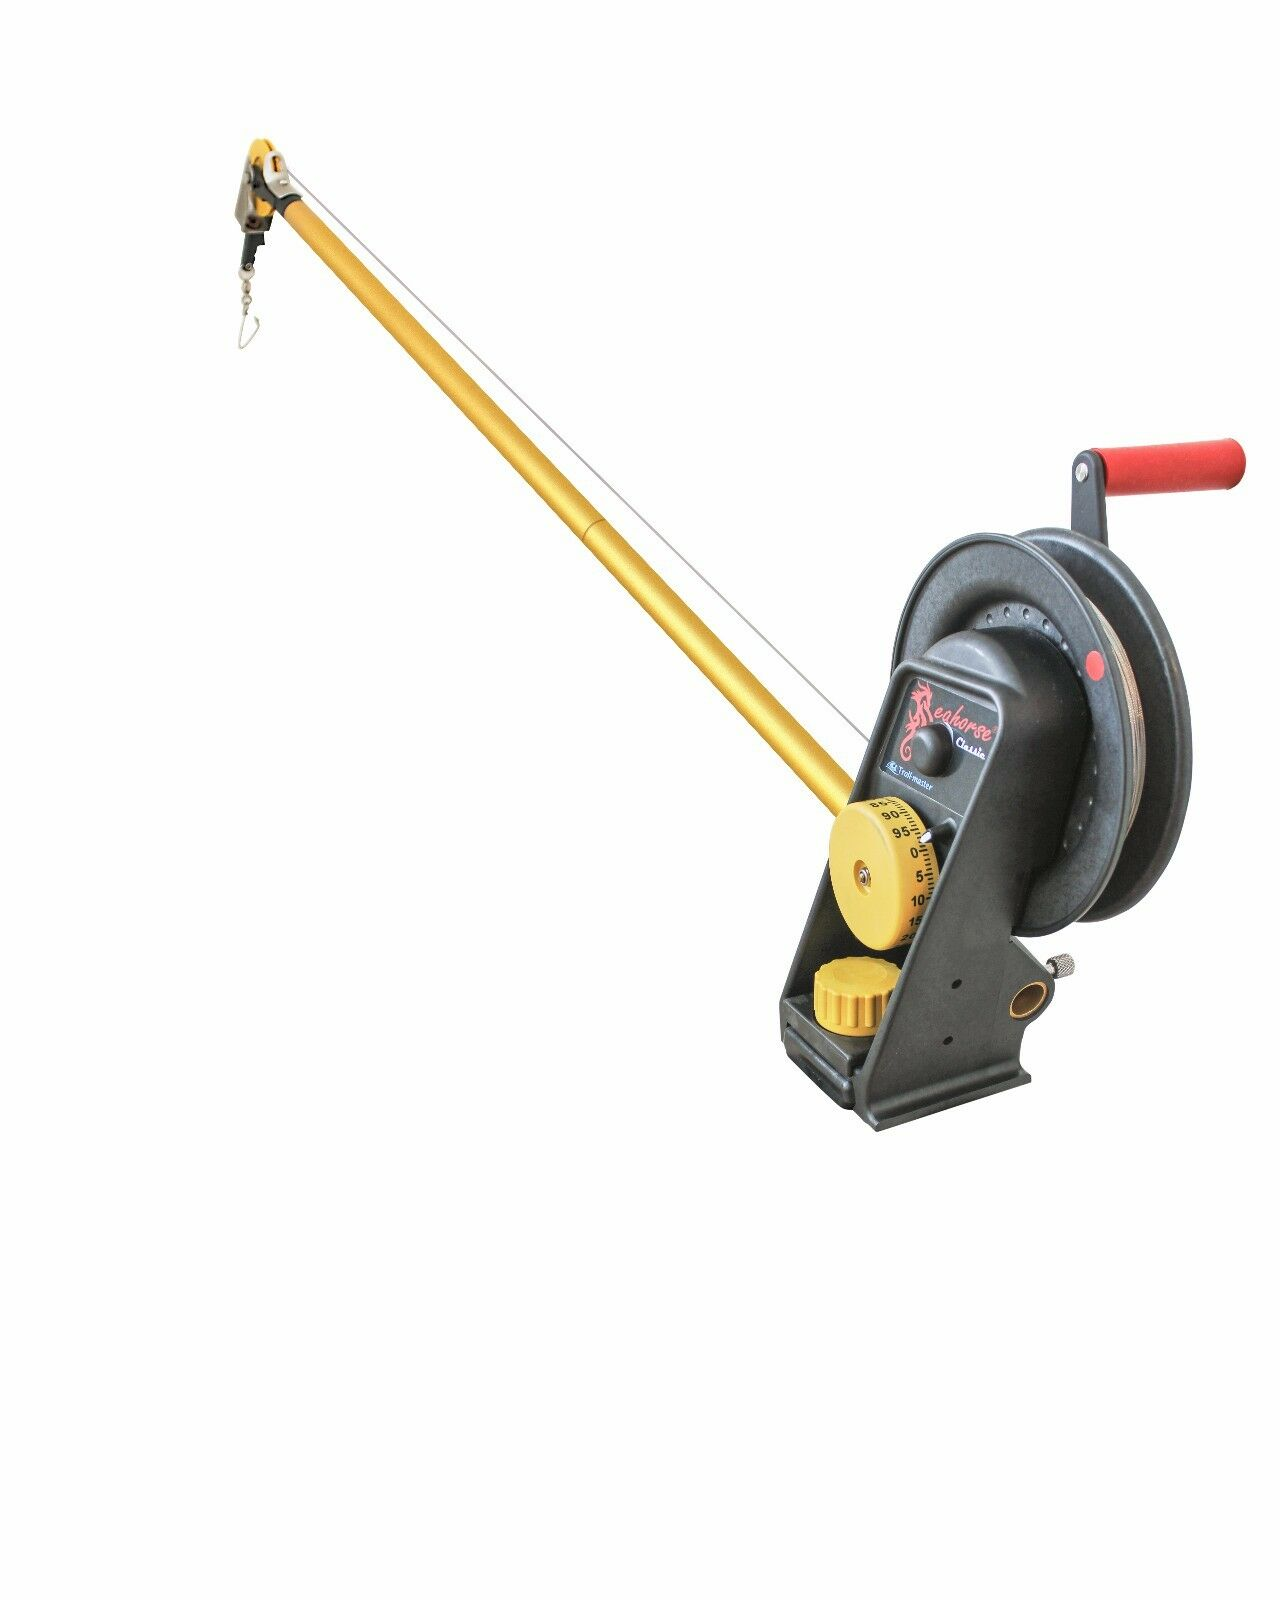 Seahorse Manual Downrigger with extended boom By Trollmaster